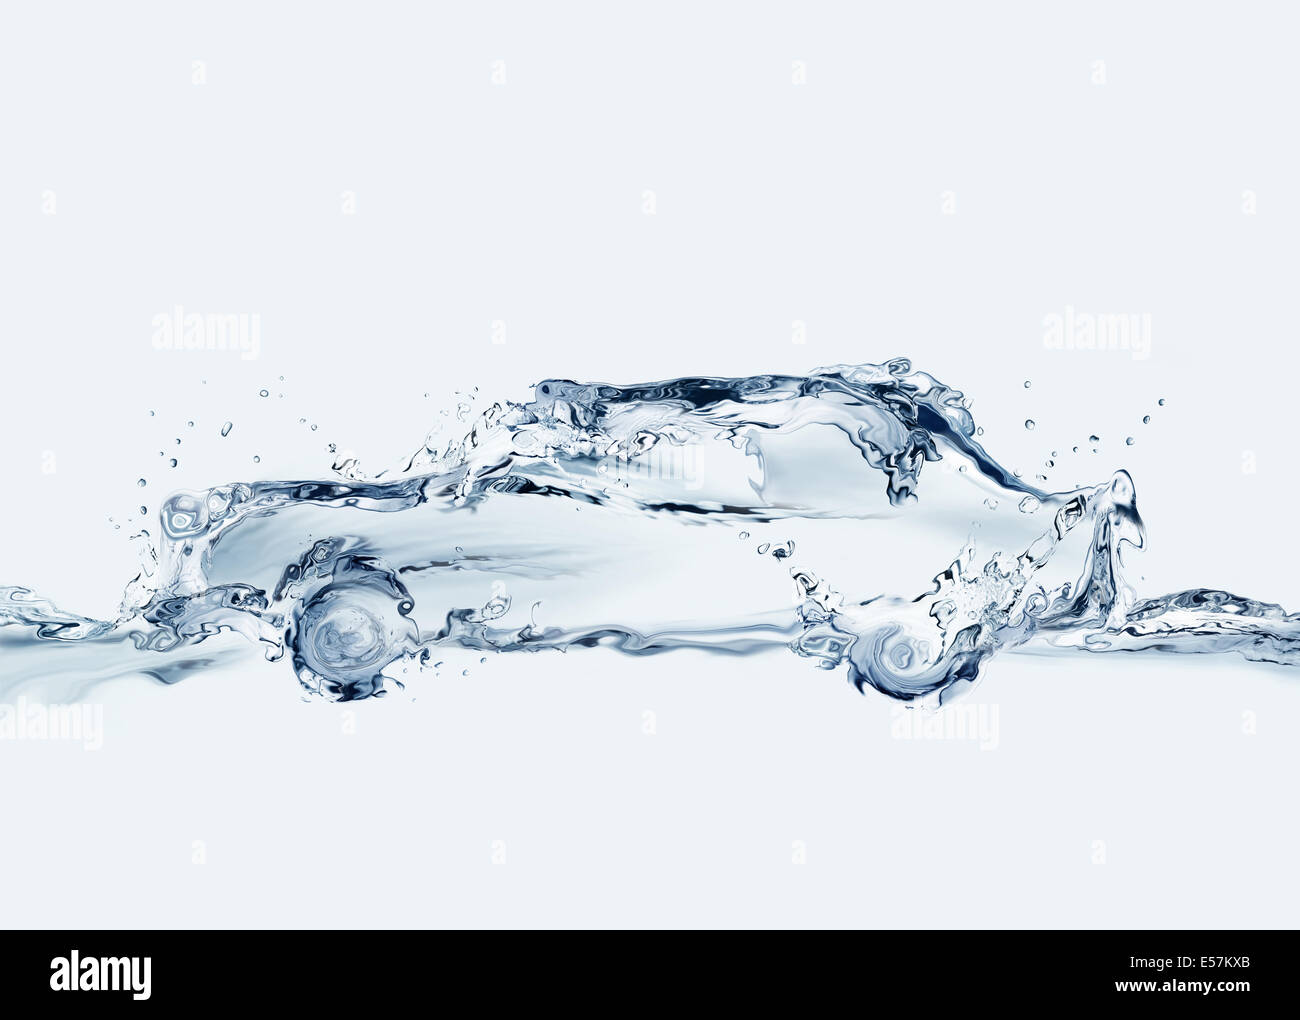 A car made of water. Can symbolize comfortable traveling, anti-pollution technologies, relaxation during traffic, - Stock Image